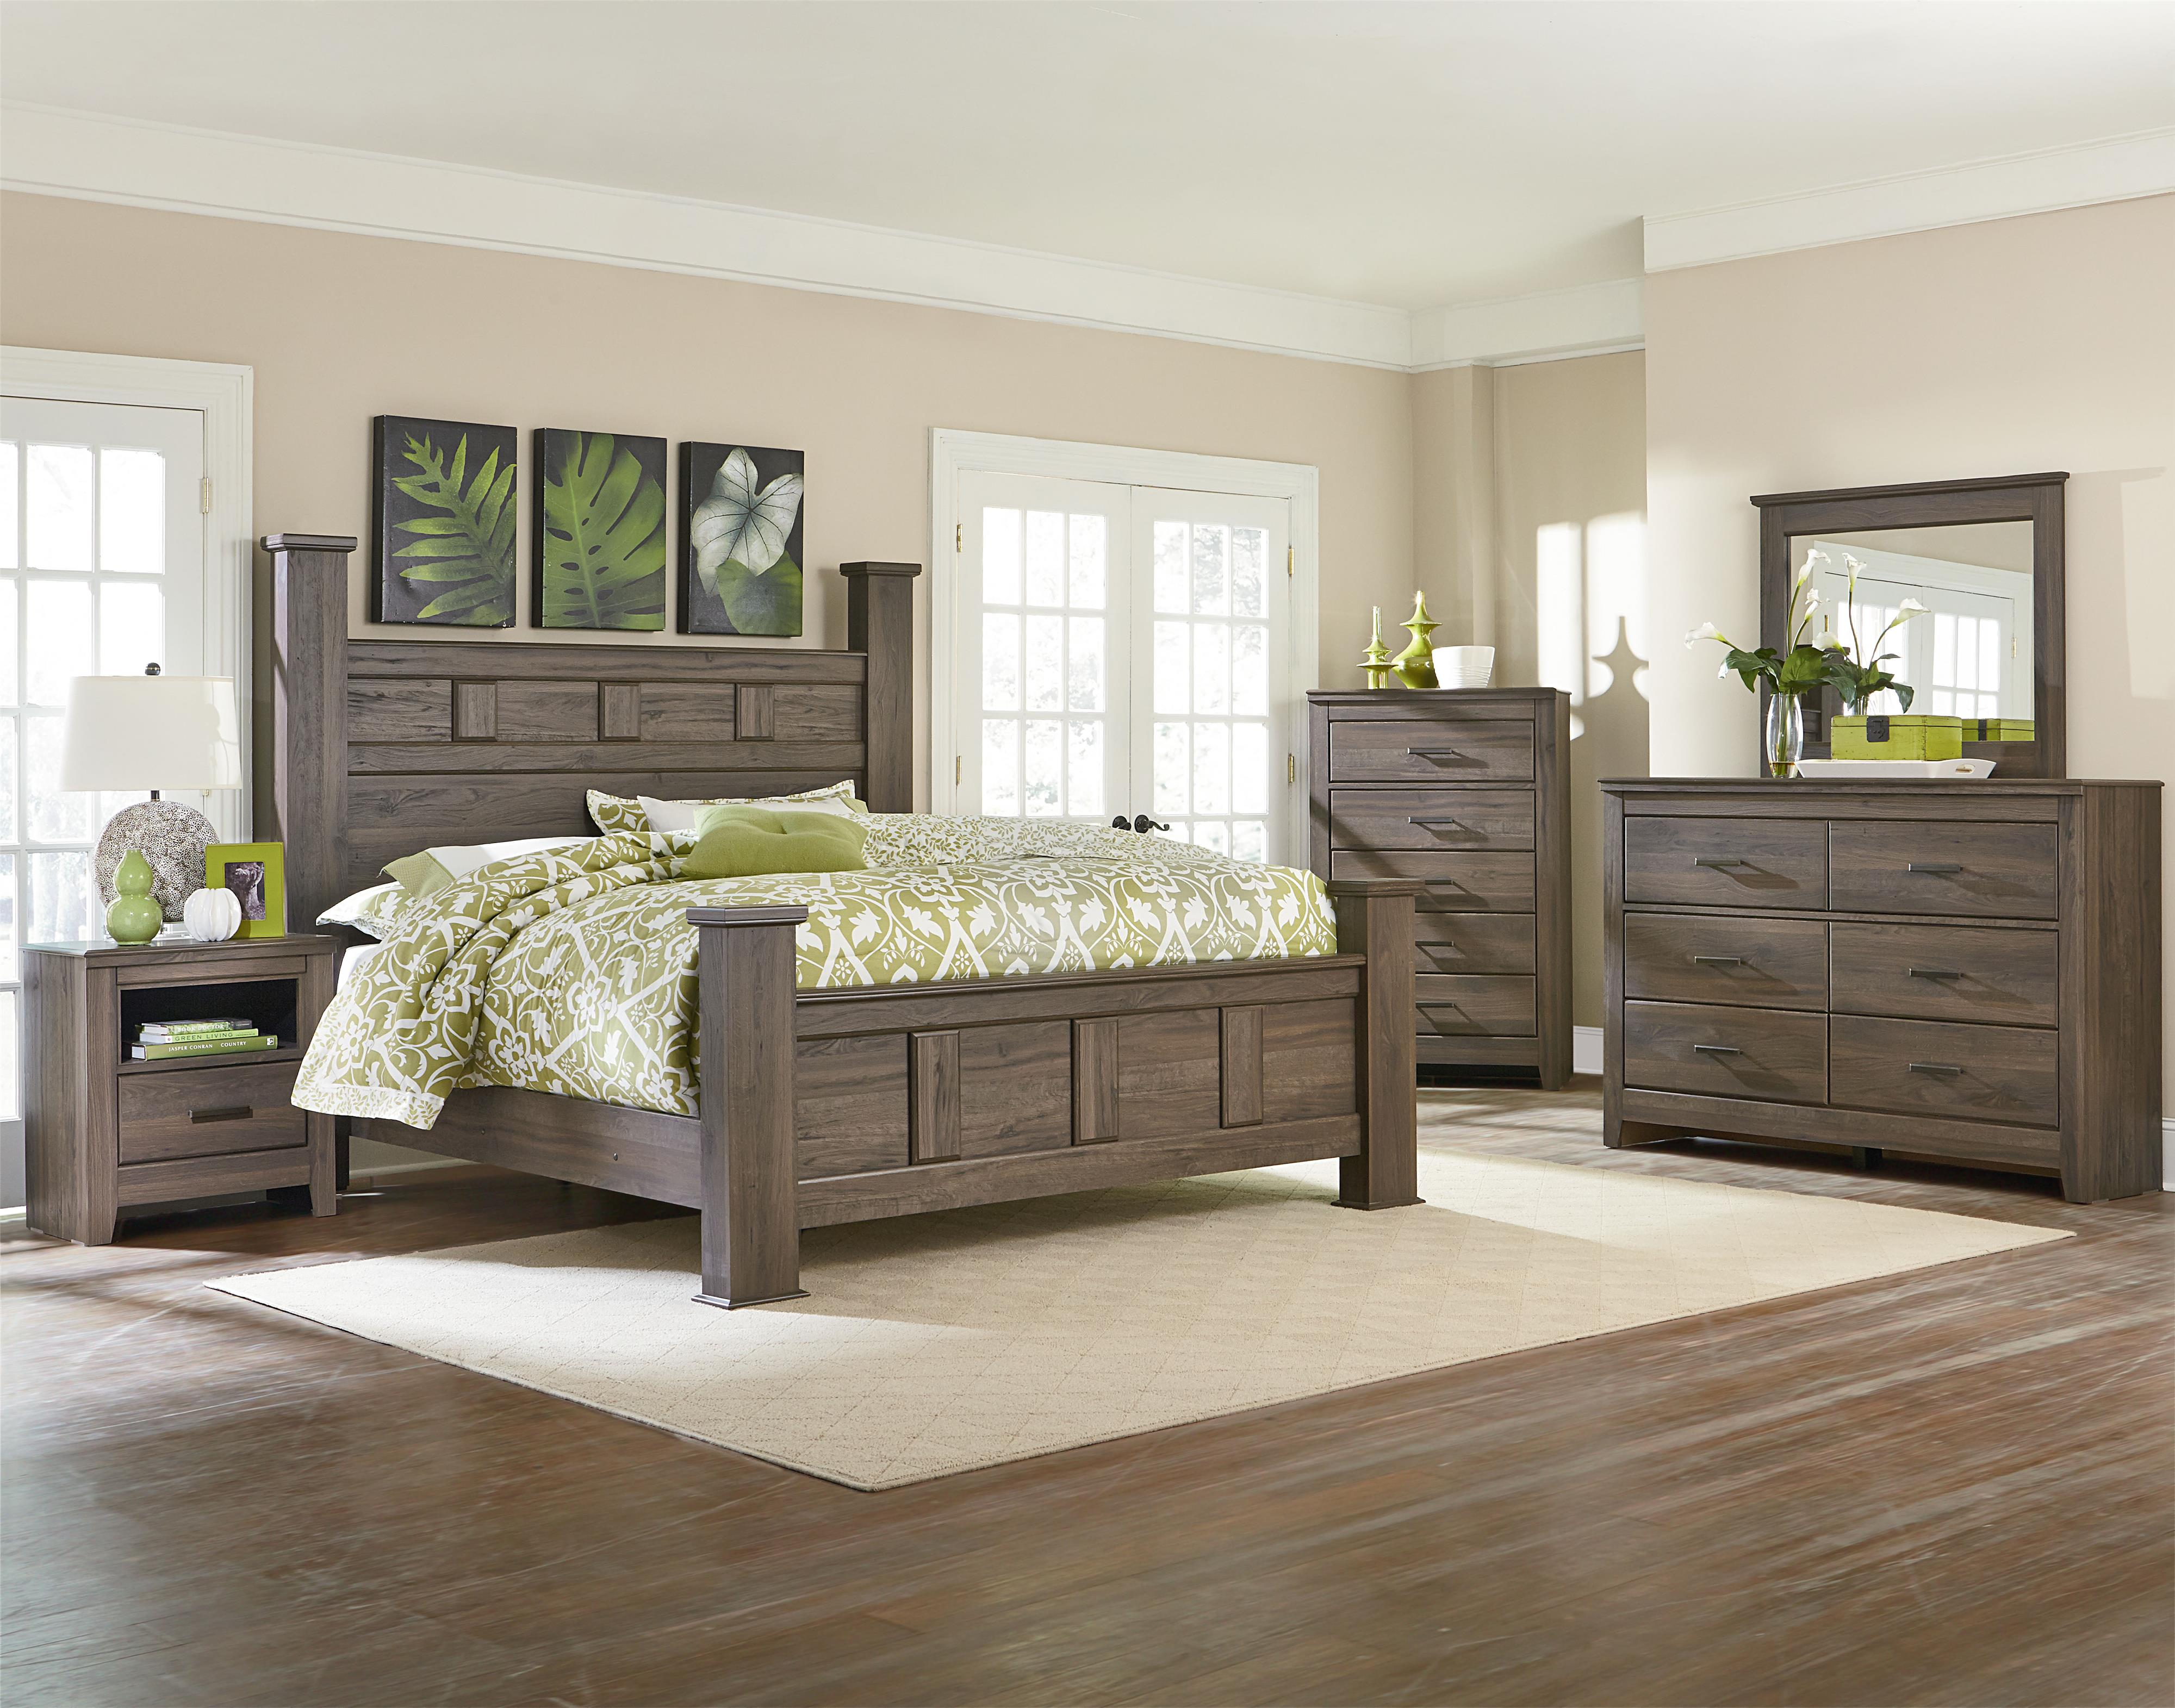 Standard Furniture Hayward Queen Panel Bed With Raised Panels | Wayside  Furniture | Platform Or Low Profile Bed